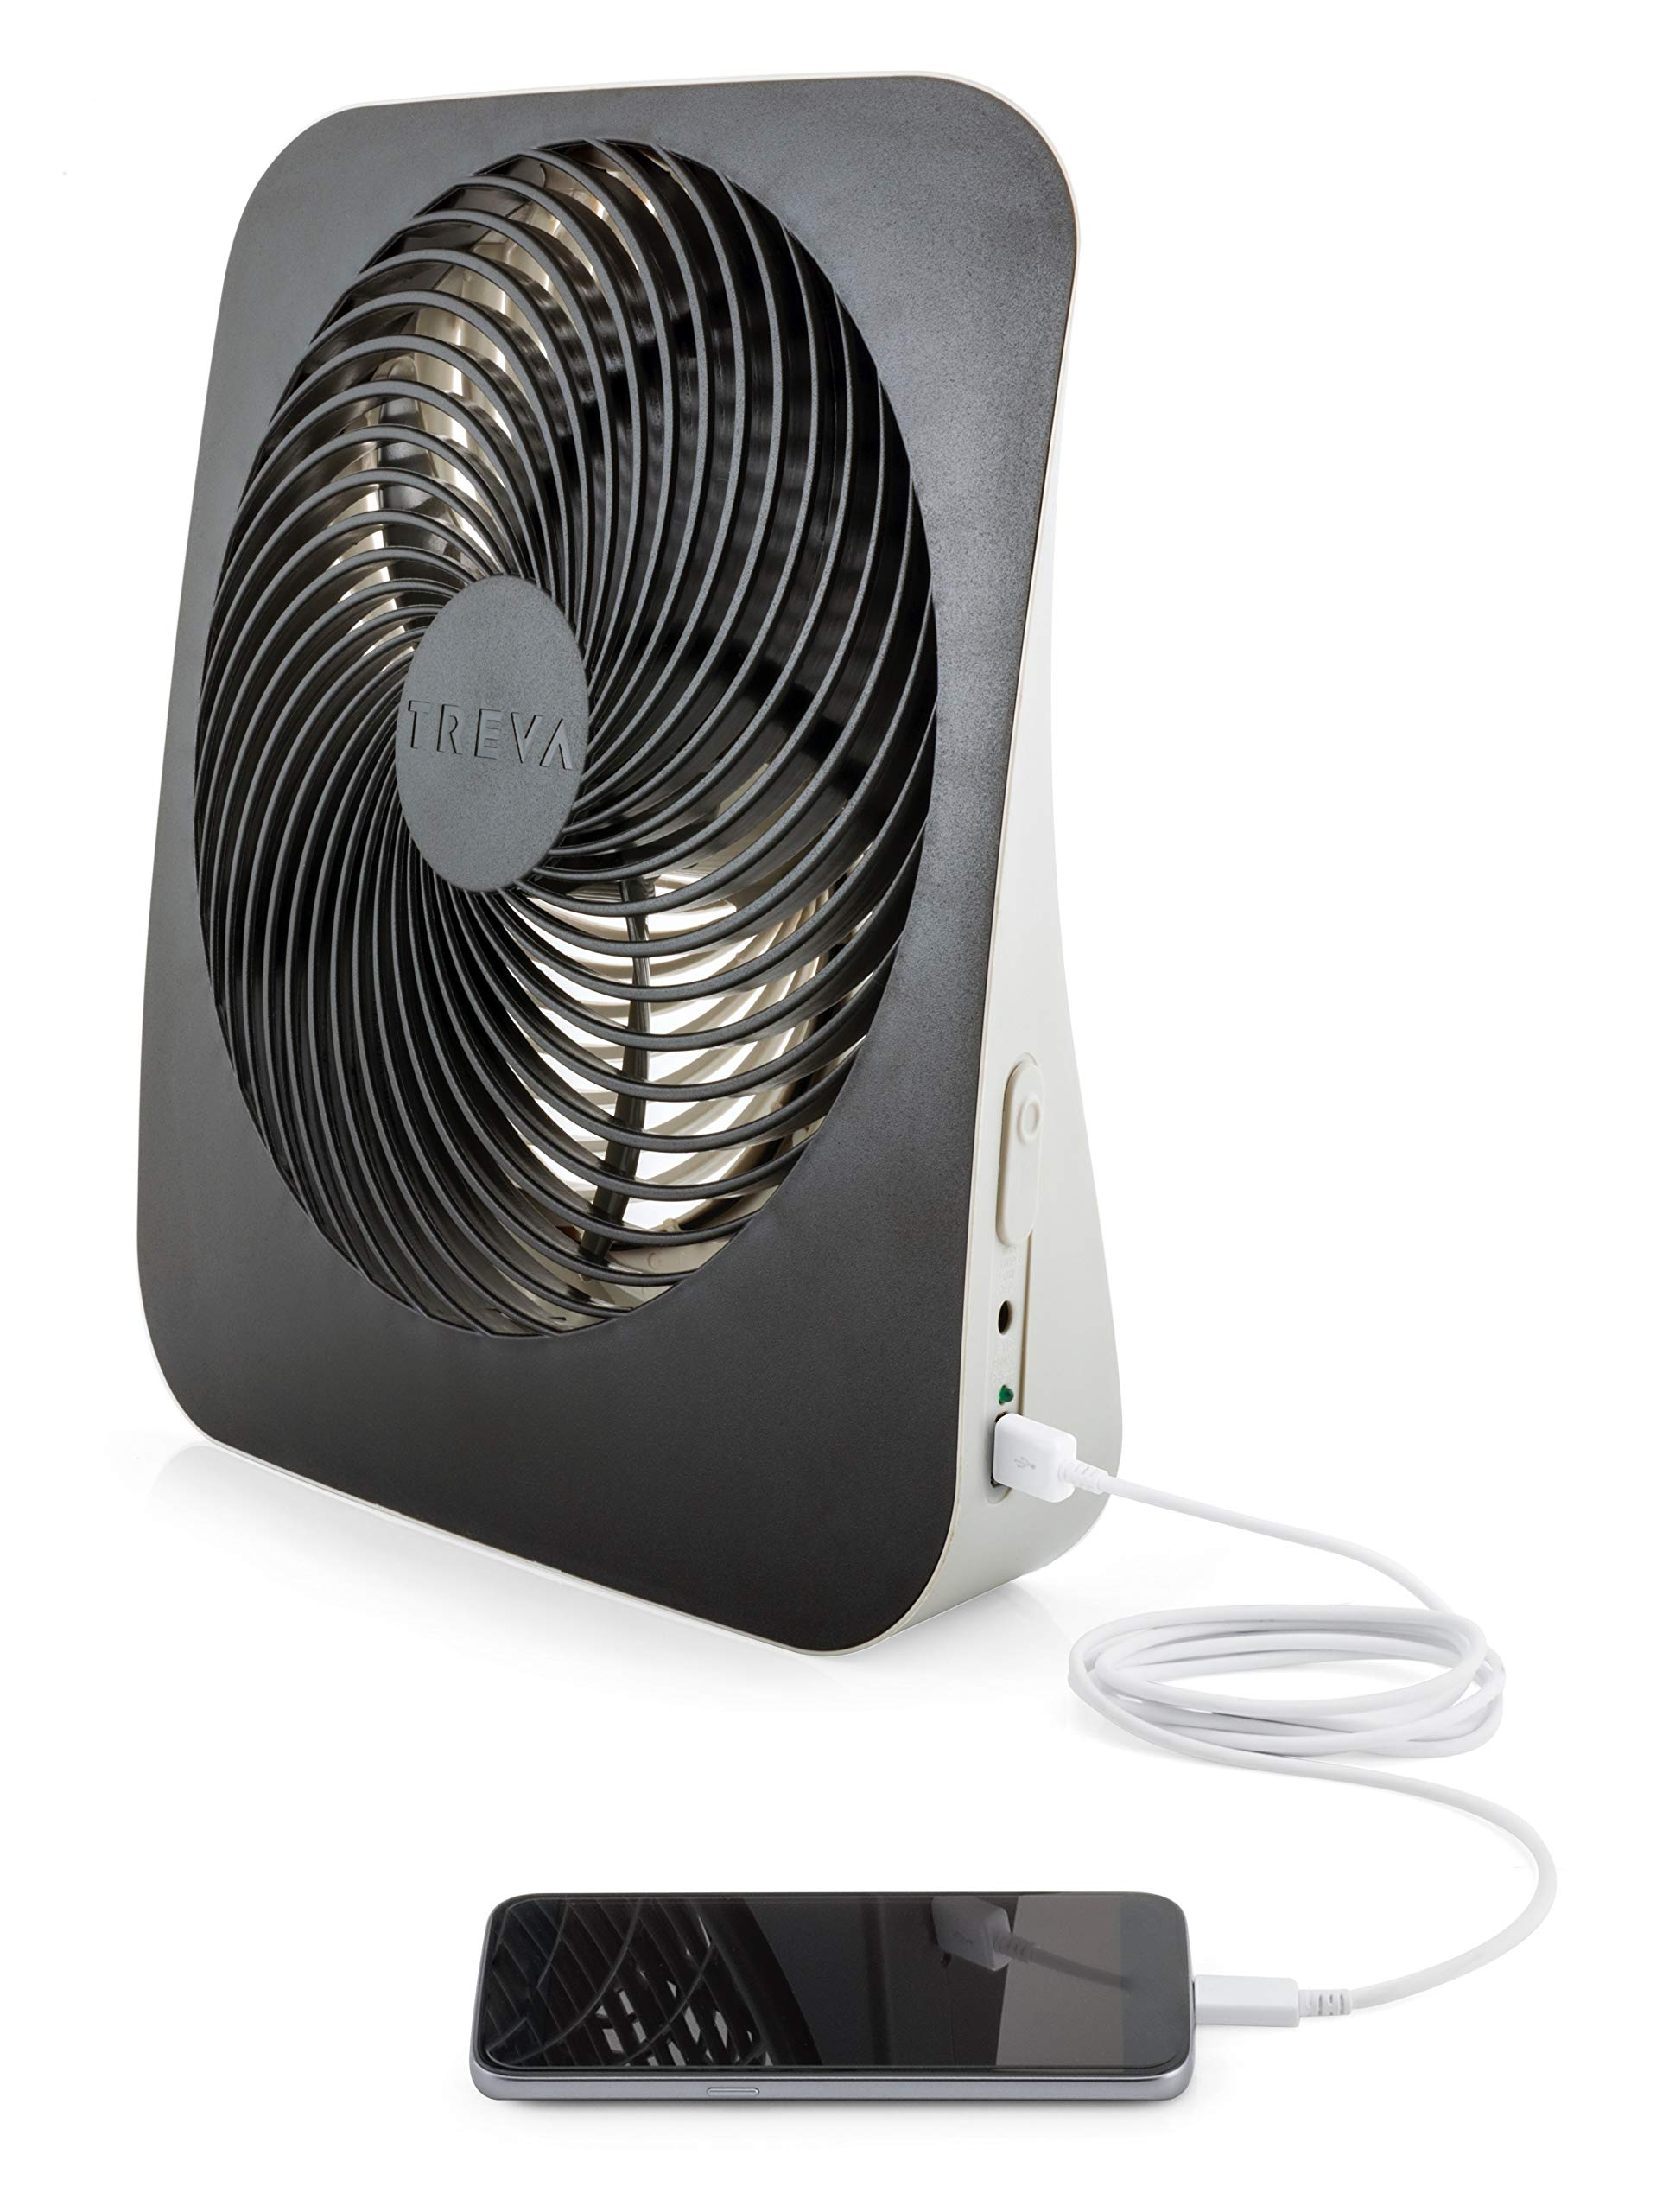 O2COOL Treva 10-Inch Portable Desktop Air Circulation Battery Powered Fan - 2 Cooling Speeds - with AC Adapter and USB Charging Port by O2COOL